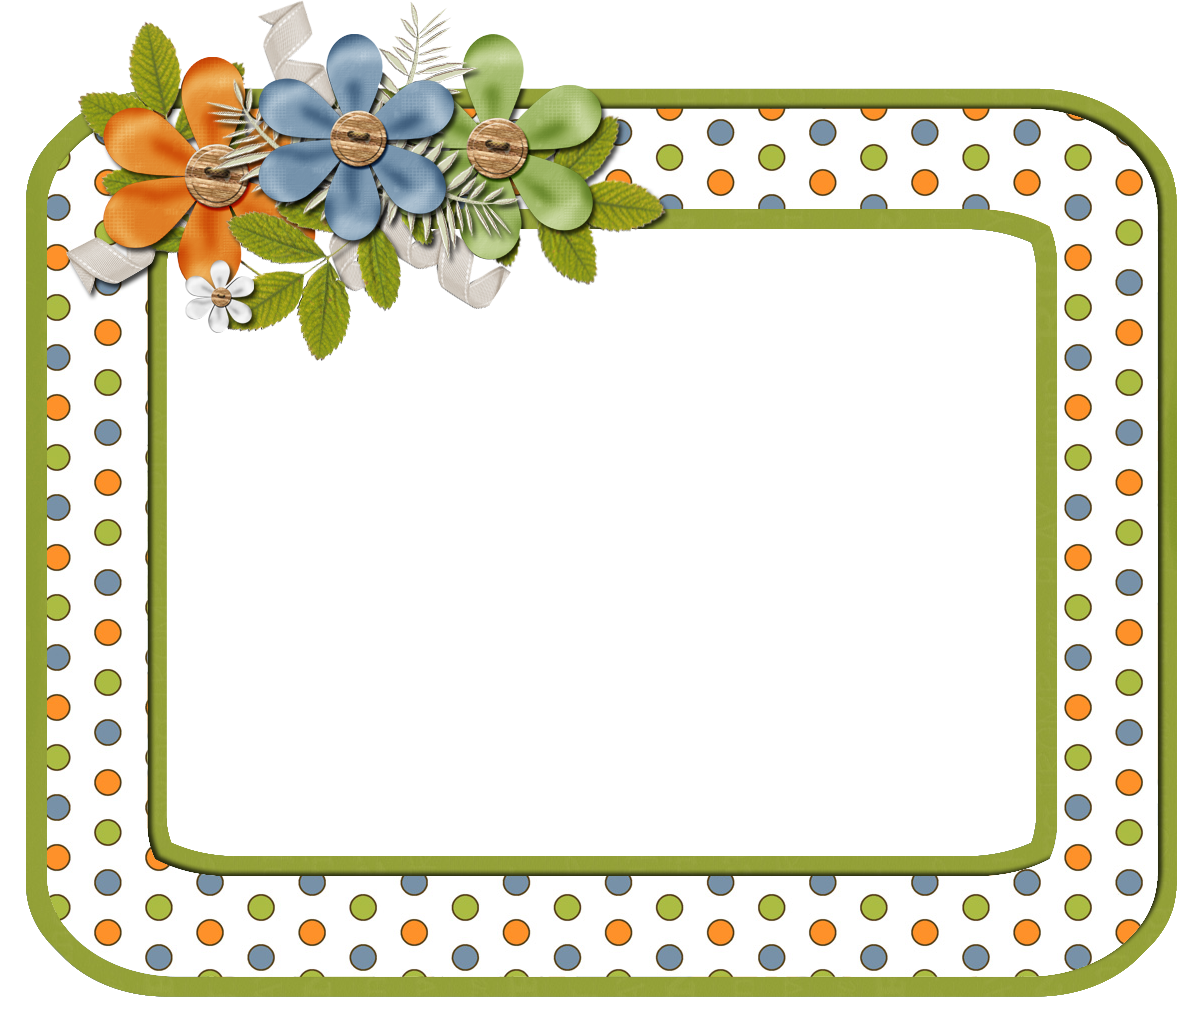 frame png scrapbook elements free orange dot digi scrapbook frame cluster frames. Black Bedroom Furniture Sets. Home Design Ideas